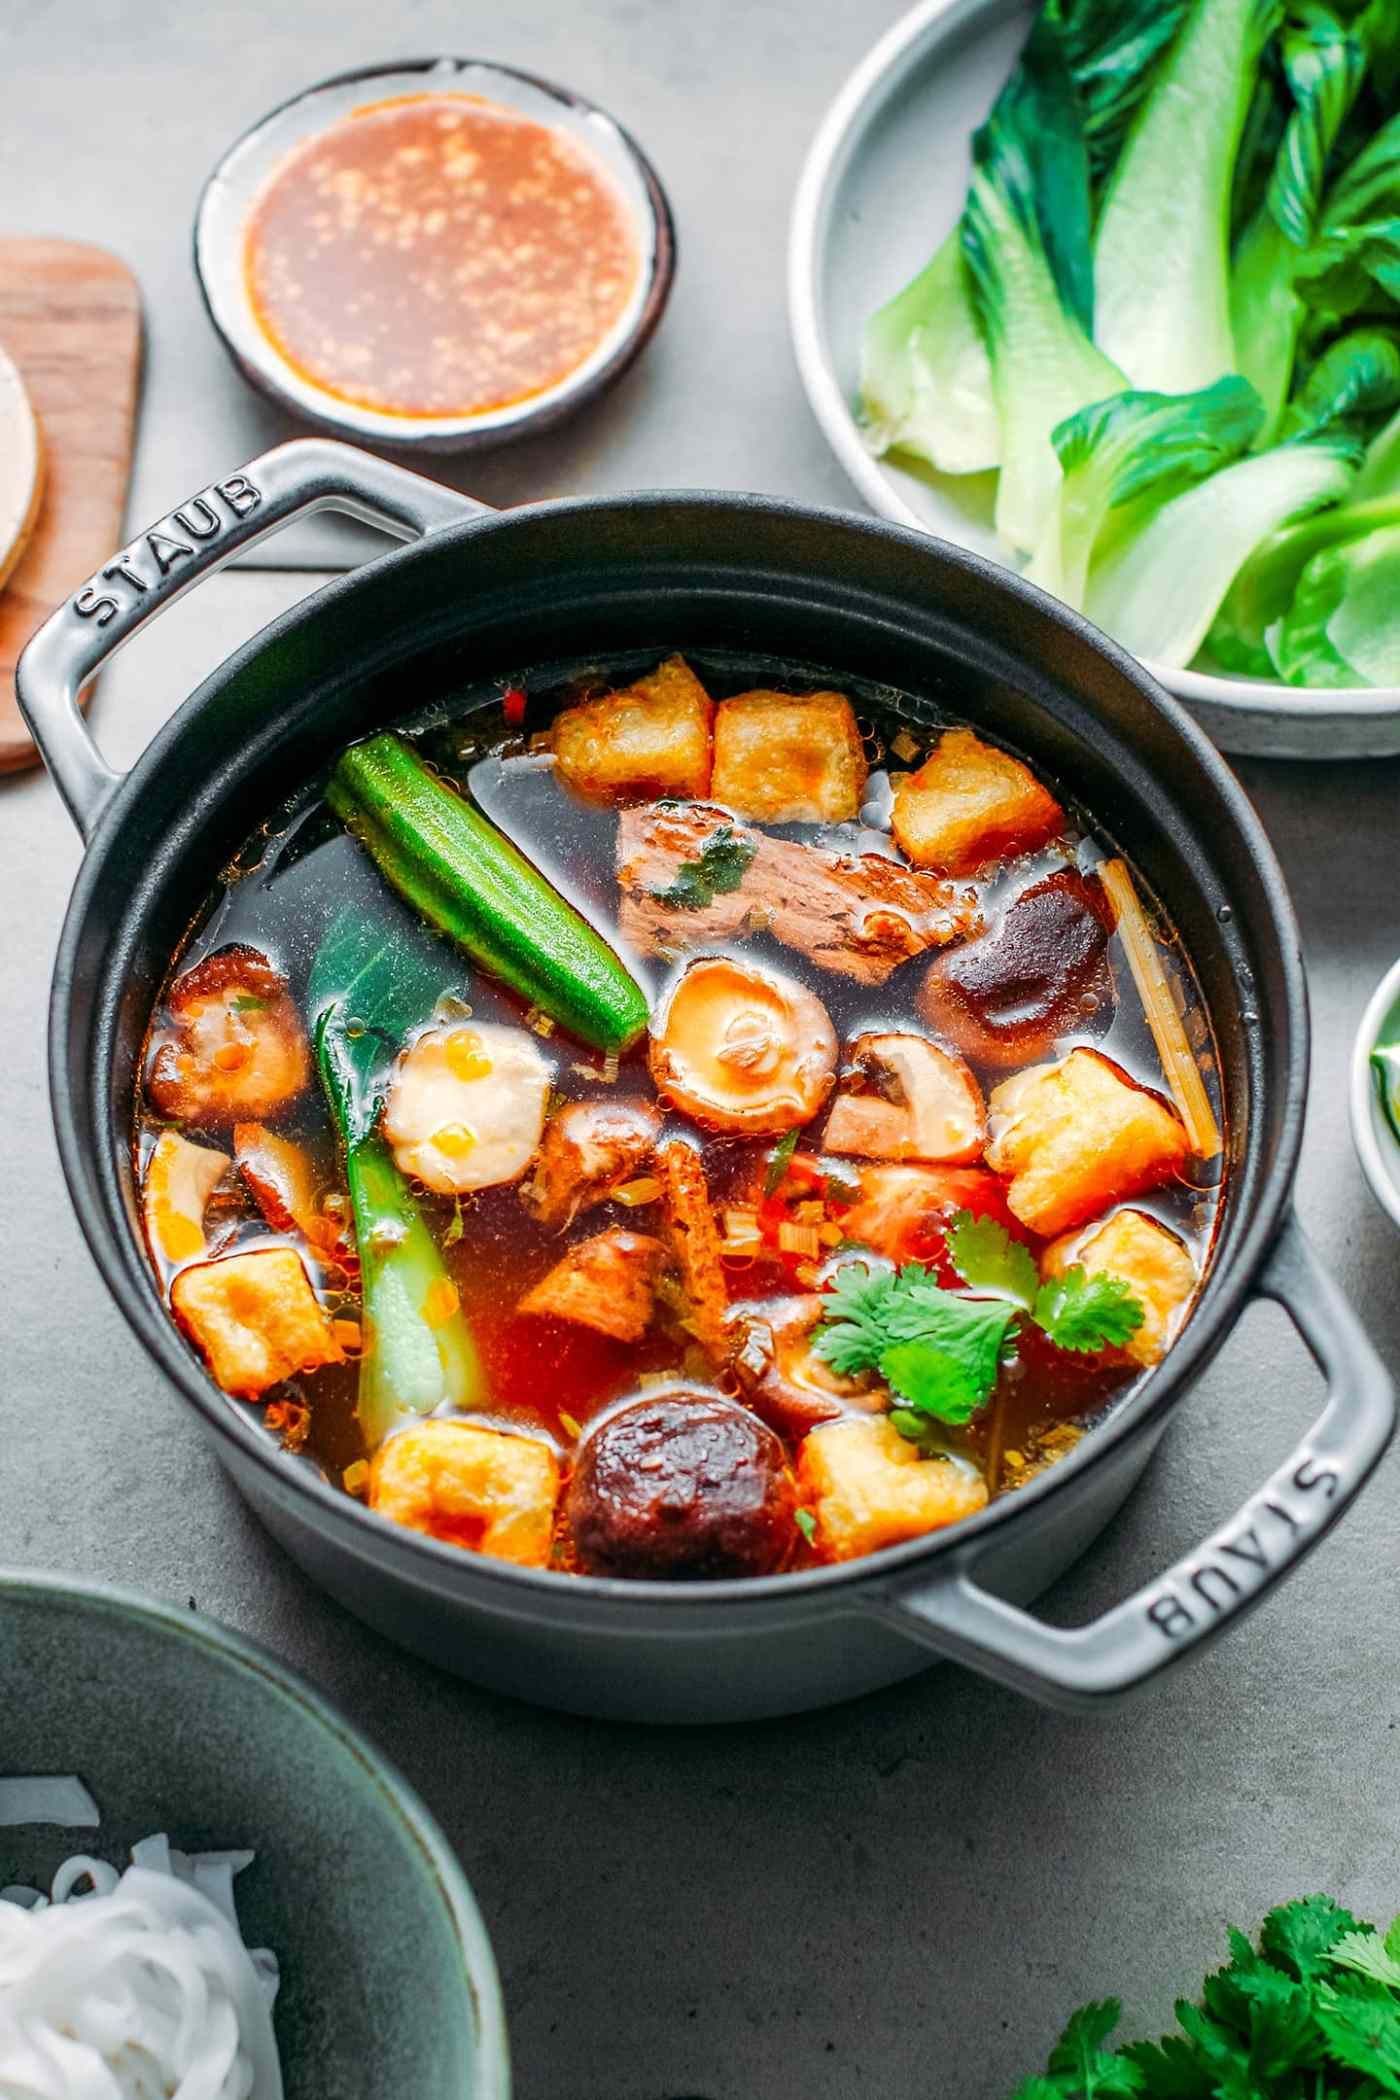 Spicy Vegan Hotpot (Spicy & Sour)